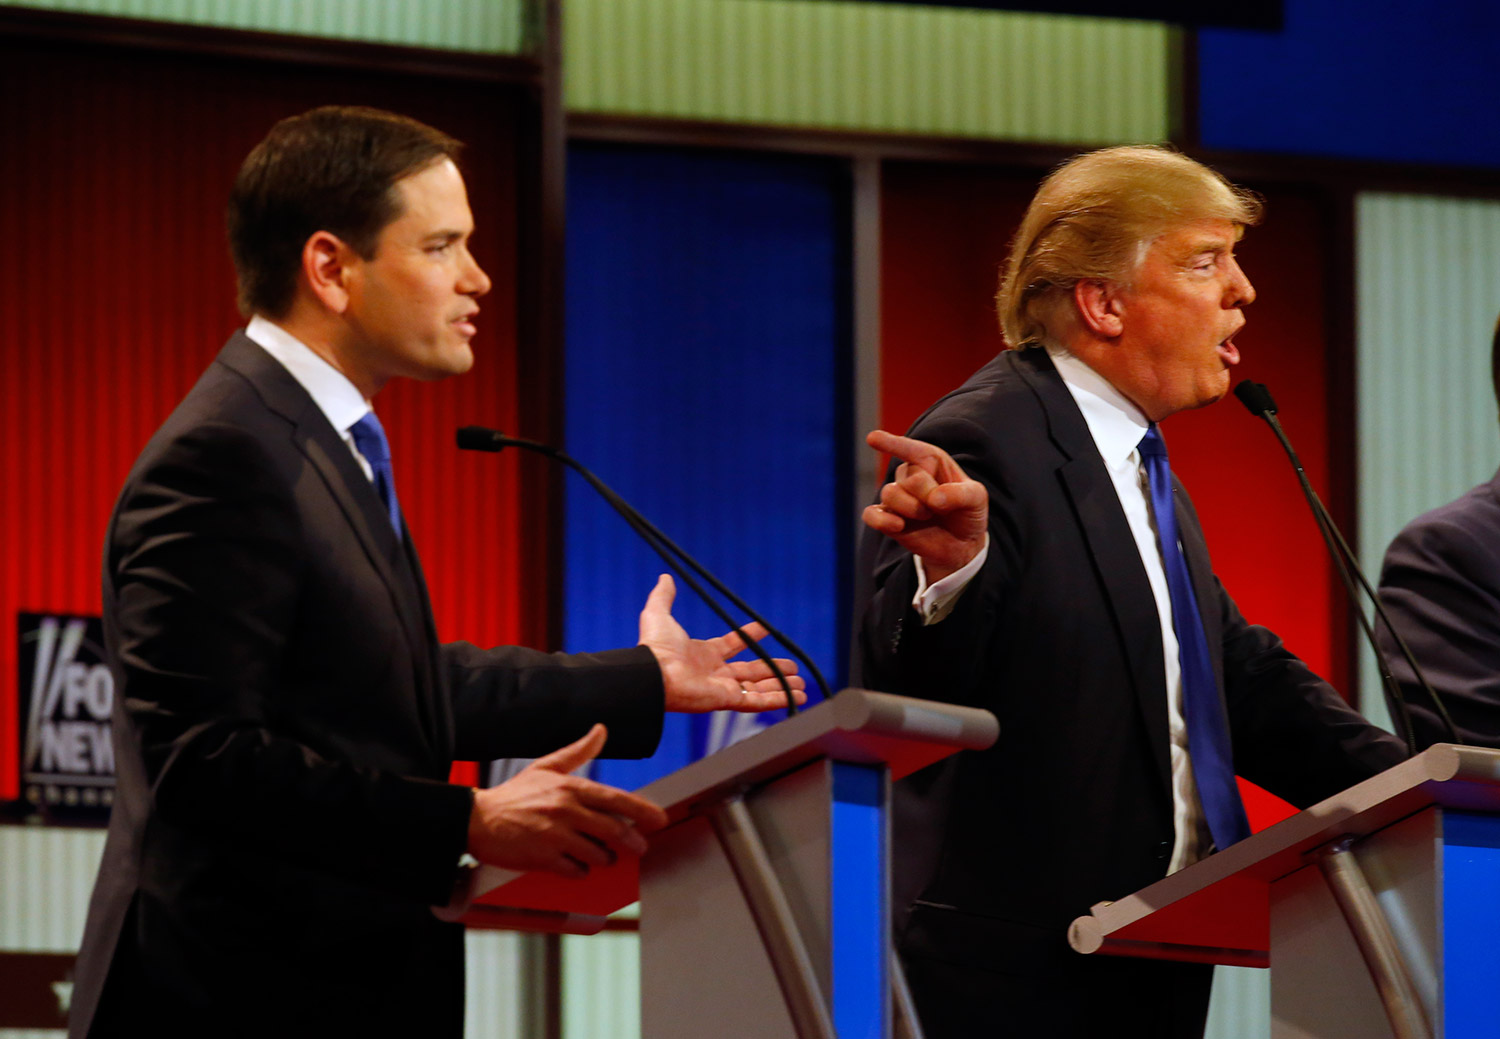 Marco Rubio and Donald Trump argue, as they did through much of Thursday night's debate in Detroit. The Associated Press